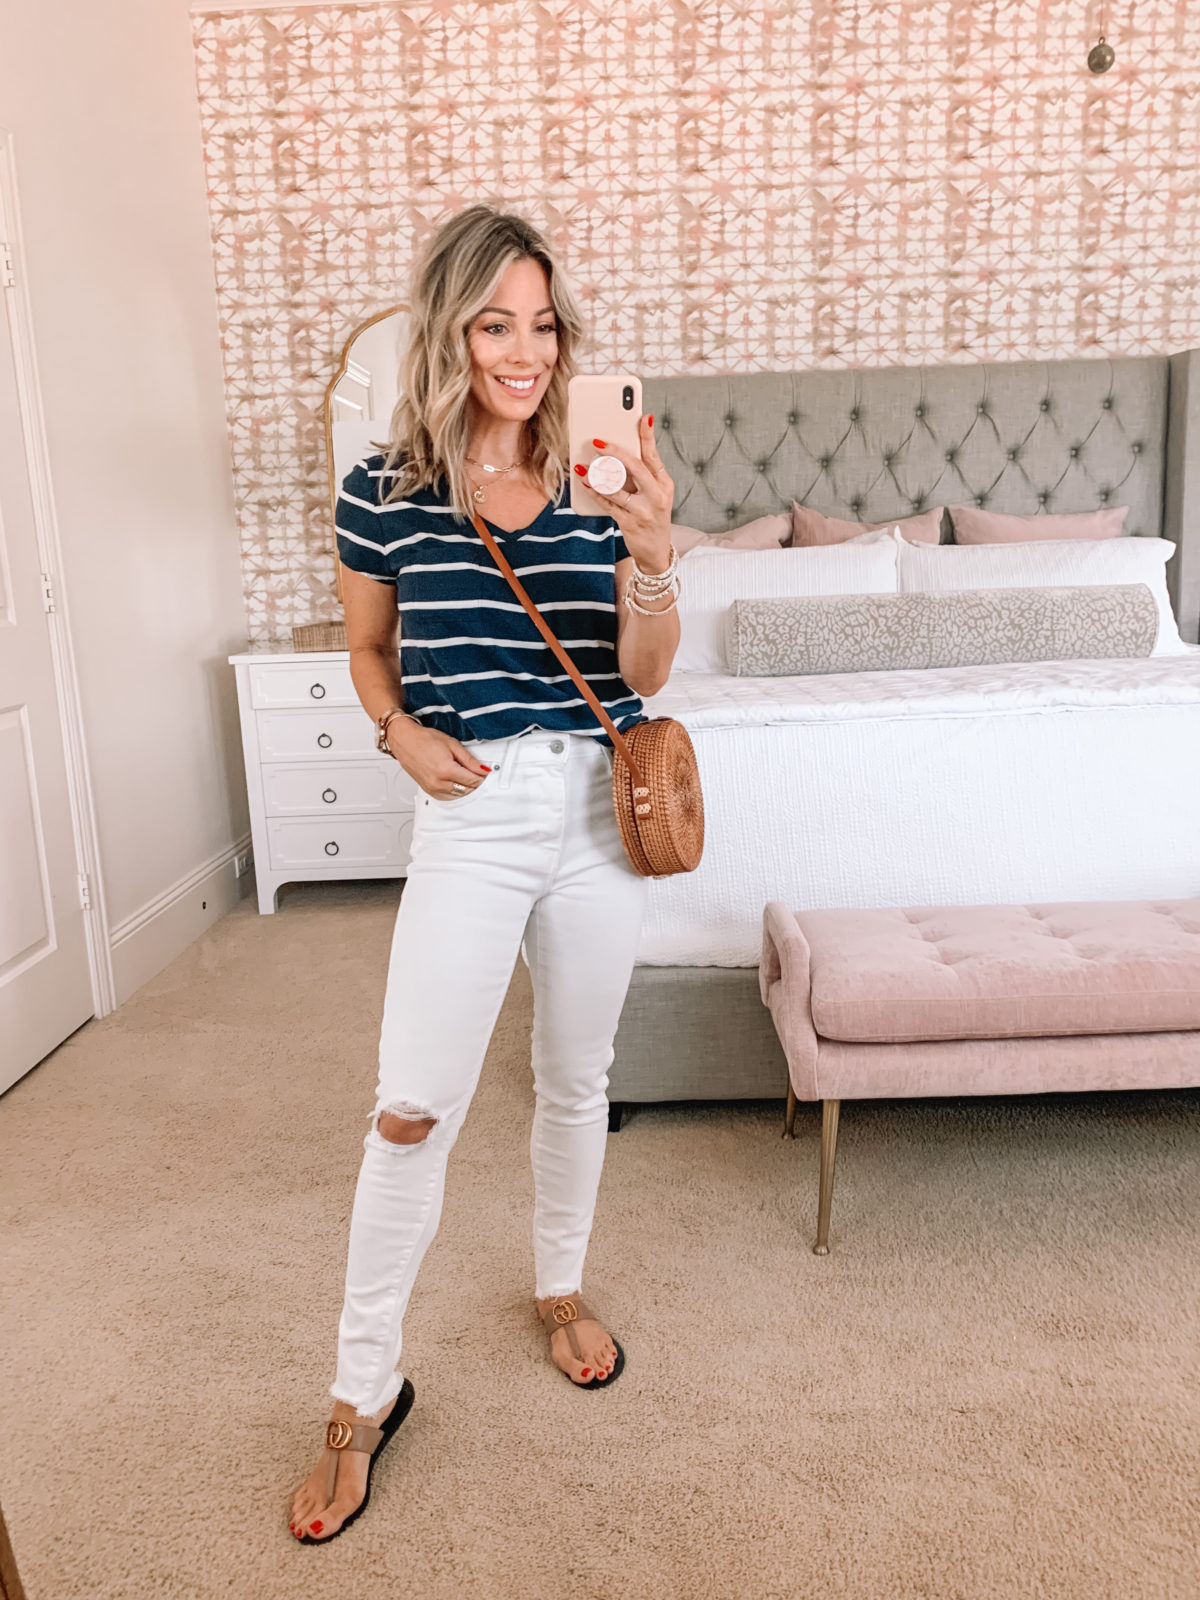 Amazon Fashion Faves, Stripe tee, White Jeans, Crossbody, Sandals